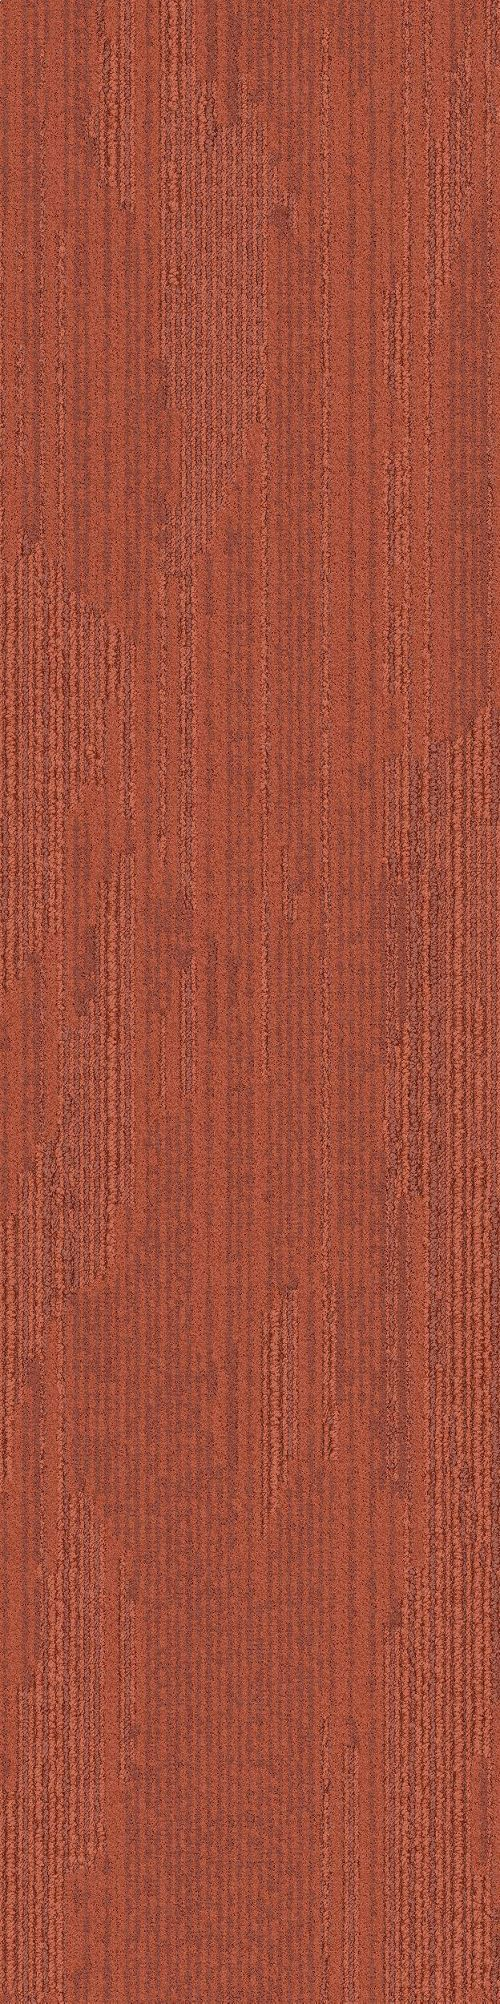 Interface Carpet Tile UR501 Color Name Orange Variant 7